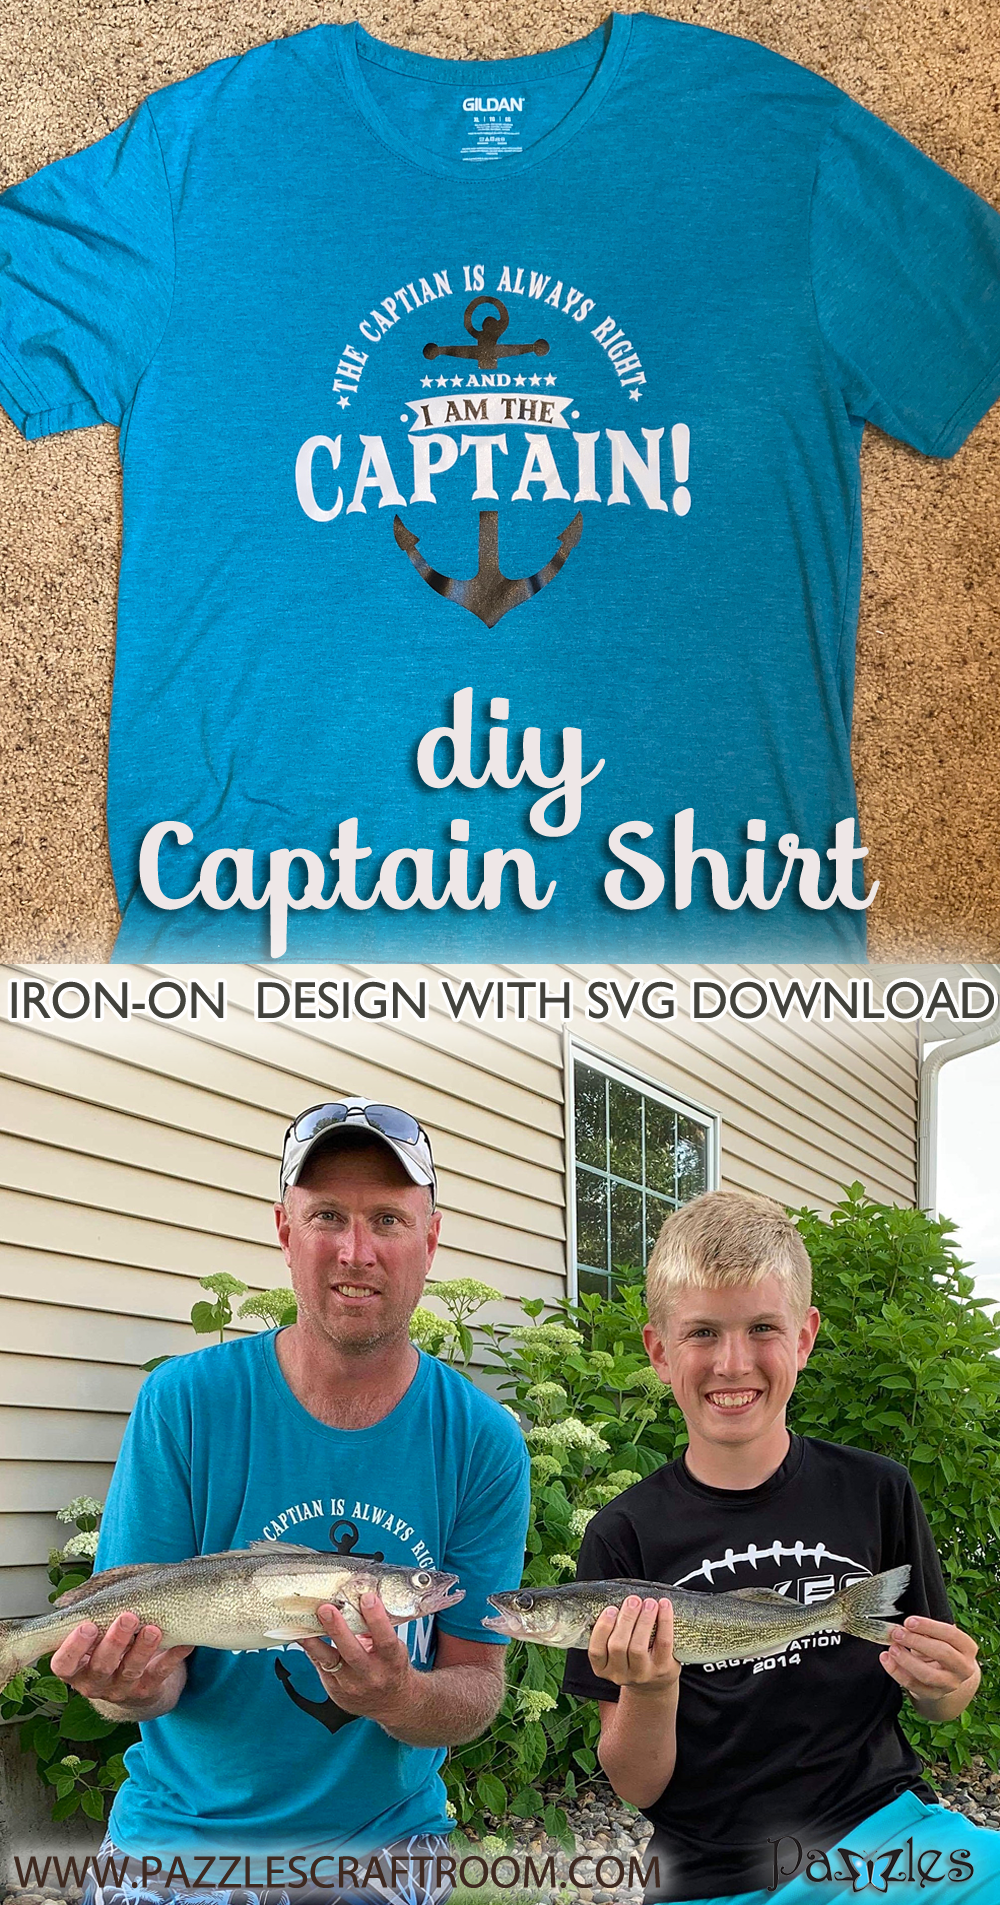 Pazzles DIY Captain Shirt Iron On Design with instant SVG download. Compatible with all major electronic cutters including Pazzles Inspiration, Cricut, and Silhouette Cameo. Design by Sara Weber.